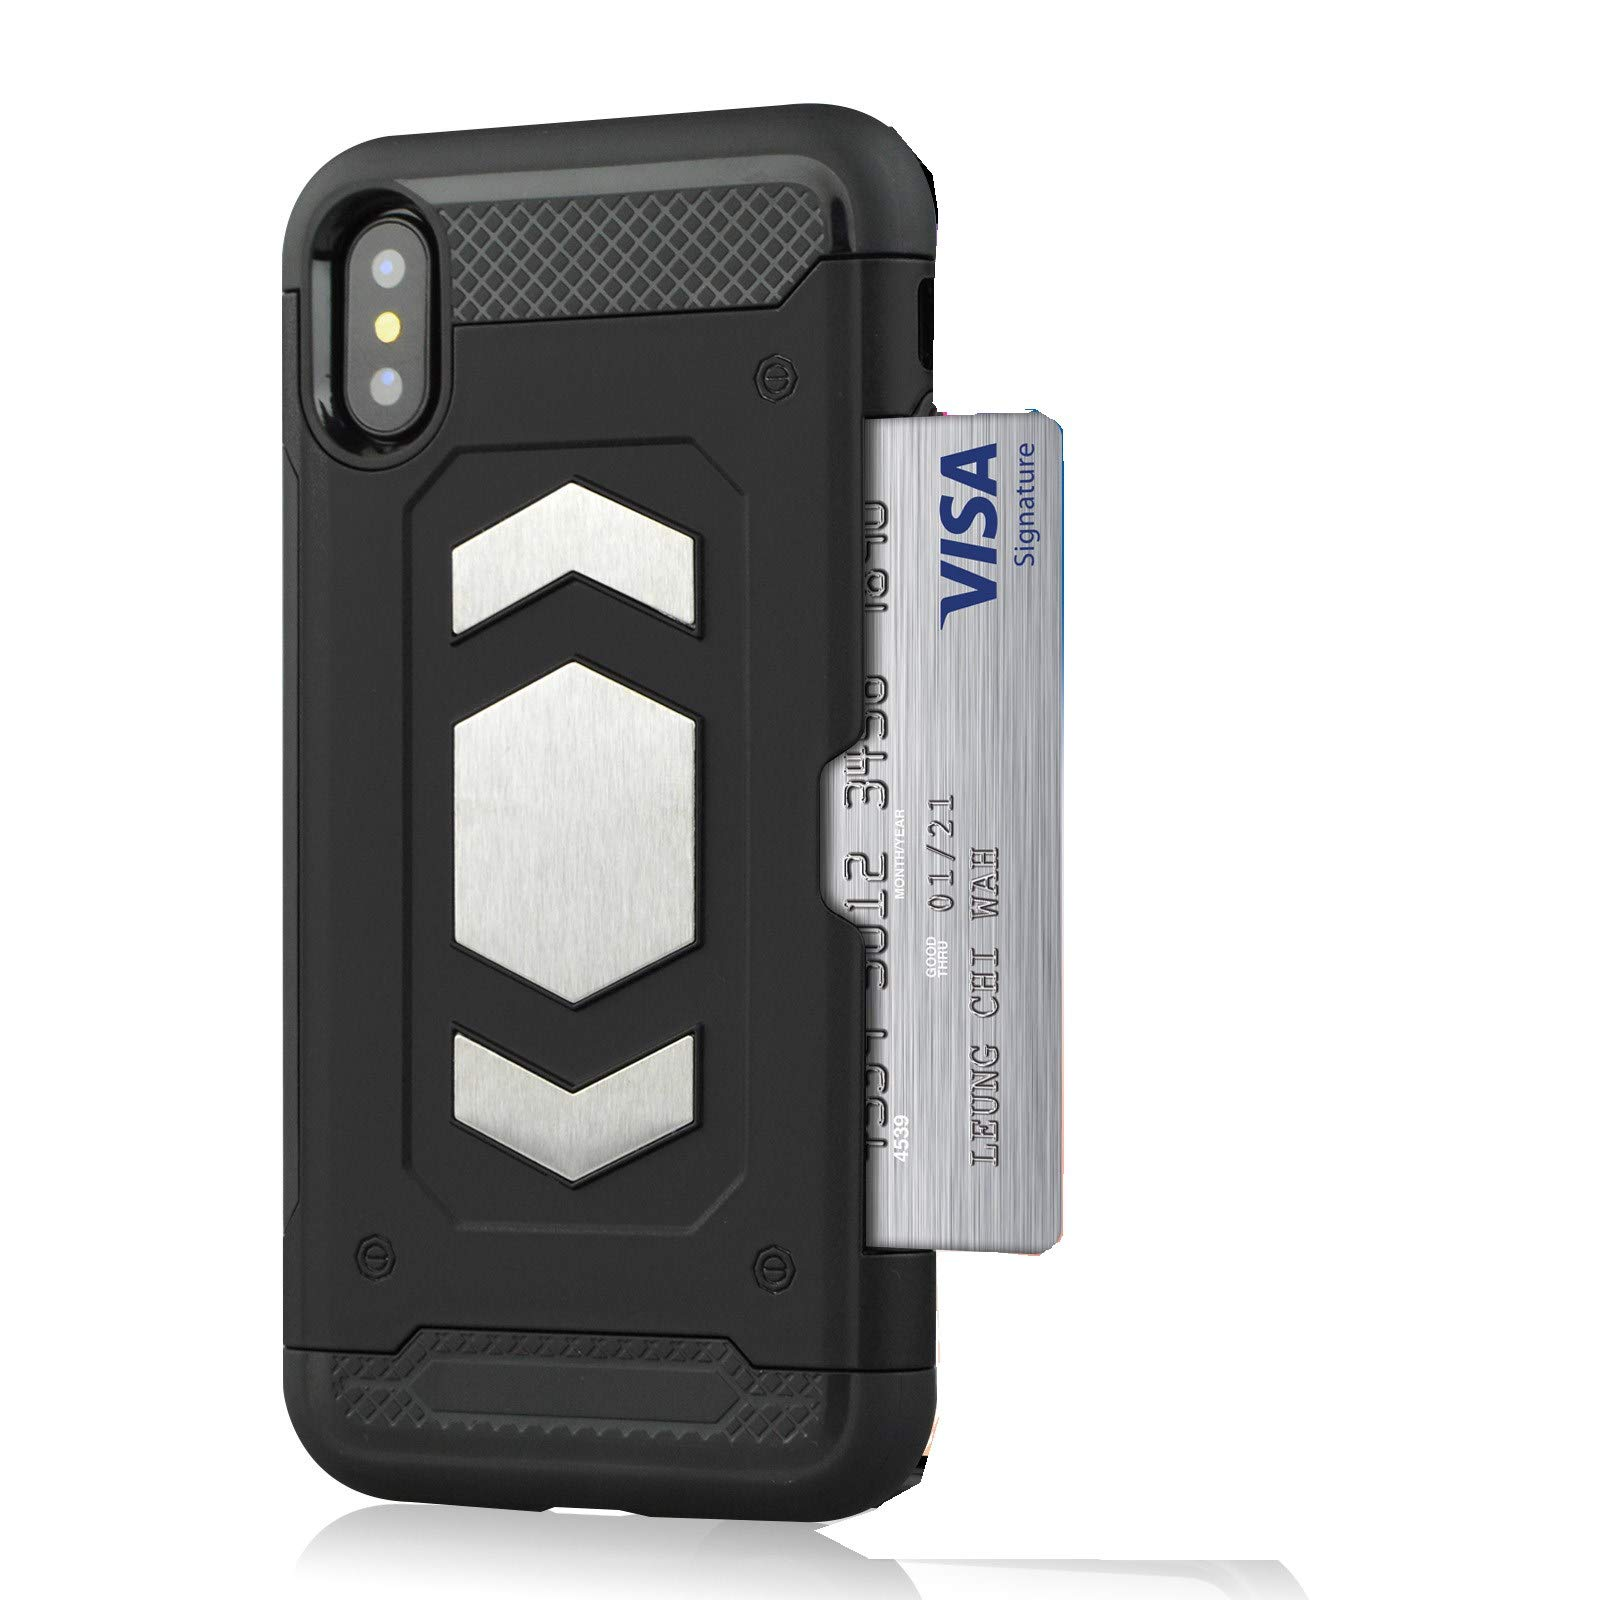 i Phone X Wallet Case, Slim Armor Shockproof Heavy Duty Protection Dual Layer TPU&PC Hybrid Case Cover with Card Slot Car Mount Holder Thin Case for i Phone XS (1, iPhone X) by 22miter